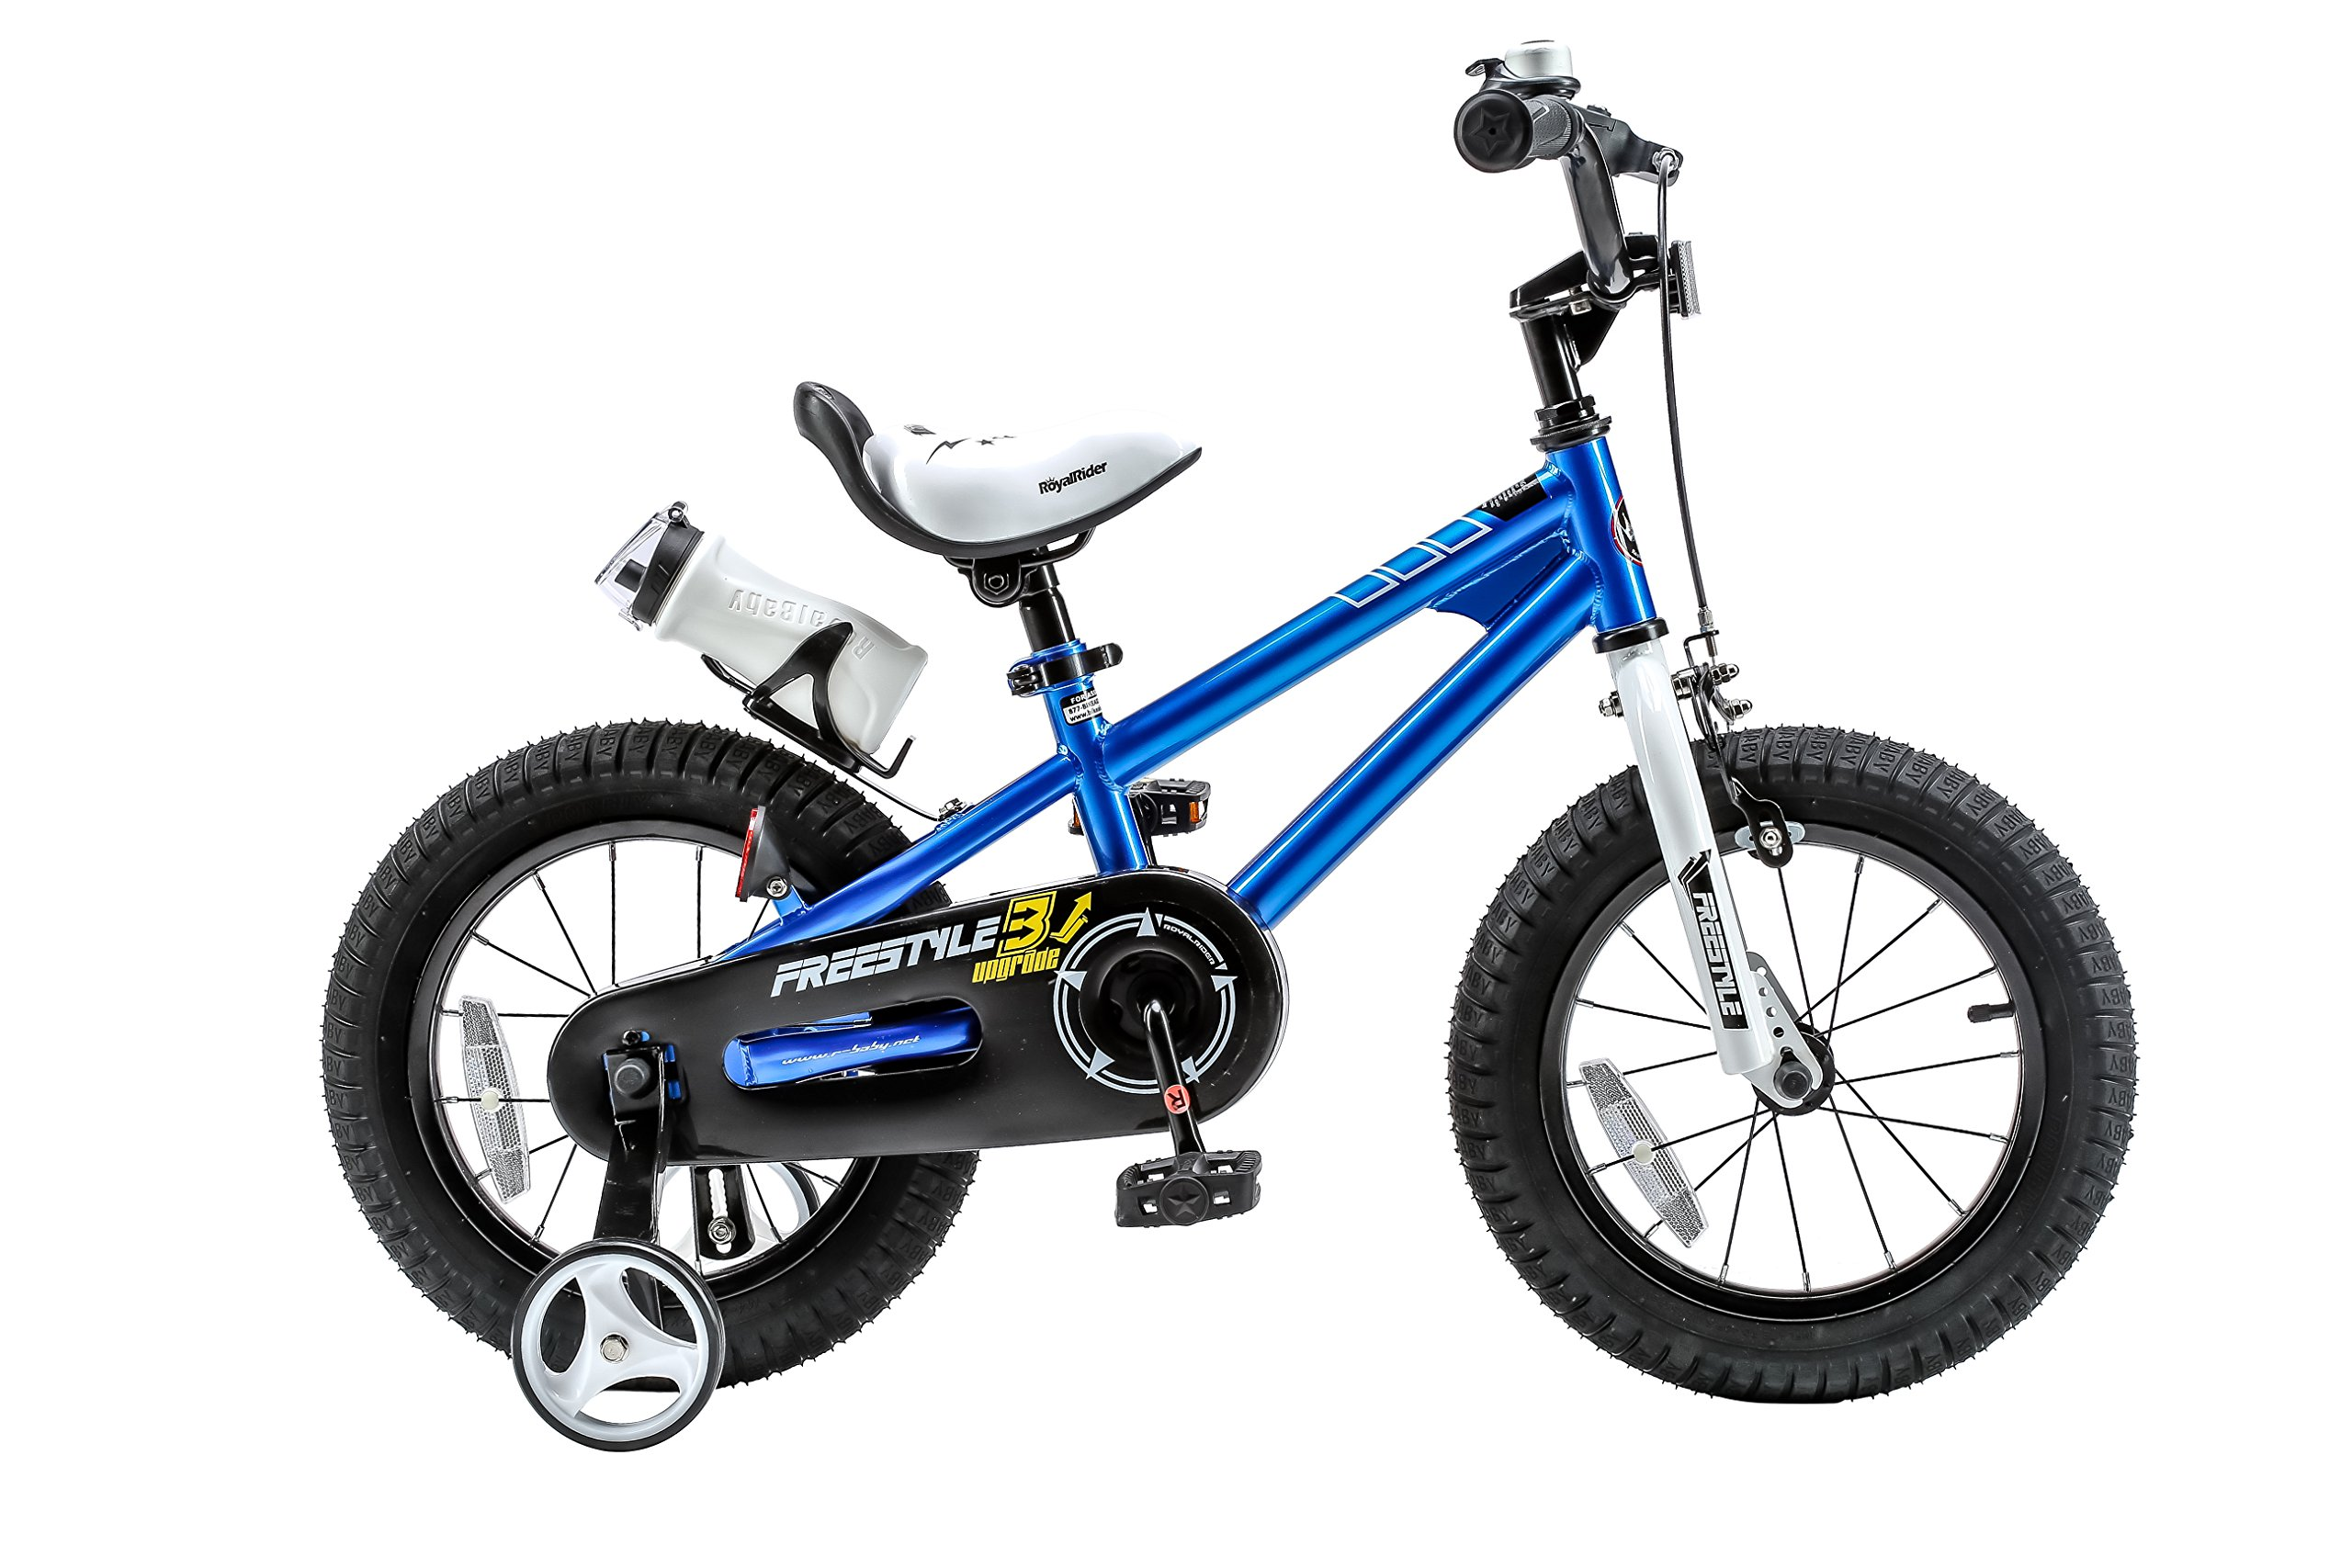 Royalbaby RB14B-6B BMX Freestyle Kids Bike, Boy's Bikes and Girl's Bikes with training wheels, Gifts for children, 14 inch wheels, Blue